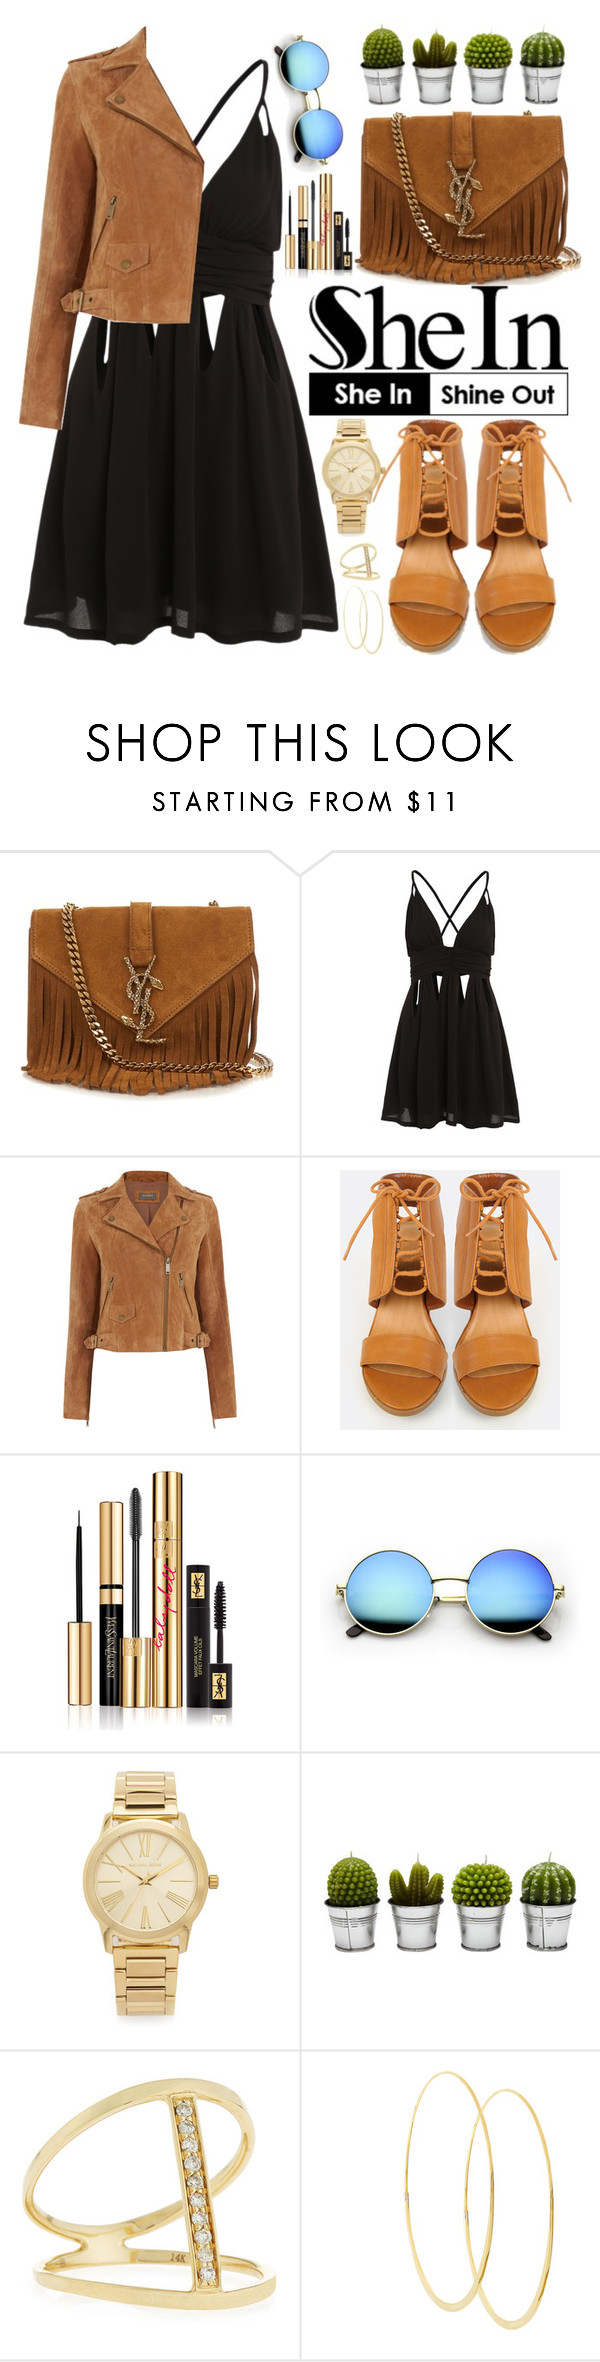 """Shein"" by oshint ❤ liked on Polyvore featuring Yves Saint Laurent, Oasis, Michael Kors, Billabong, Sydney Evan and Lana"